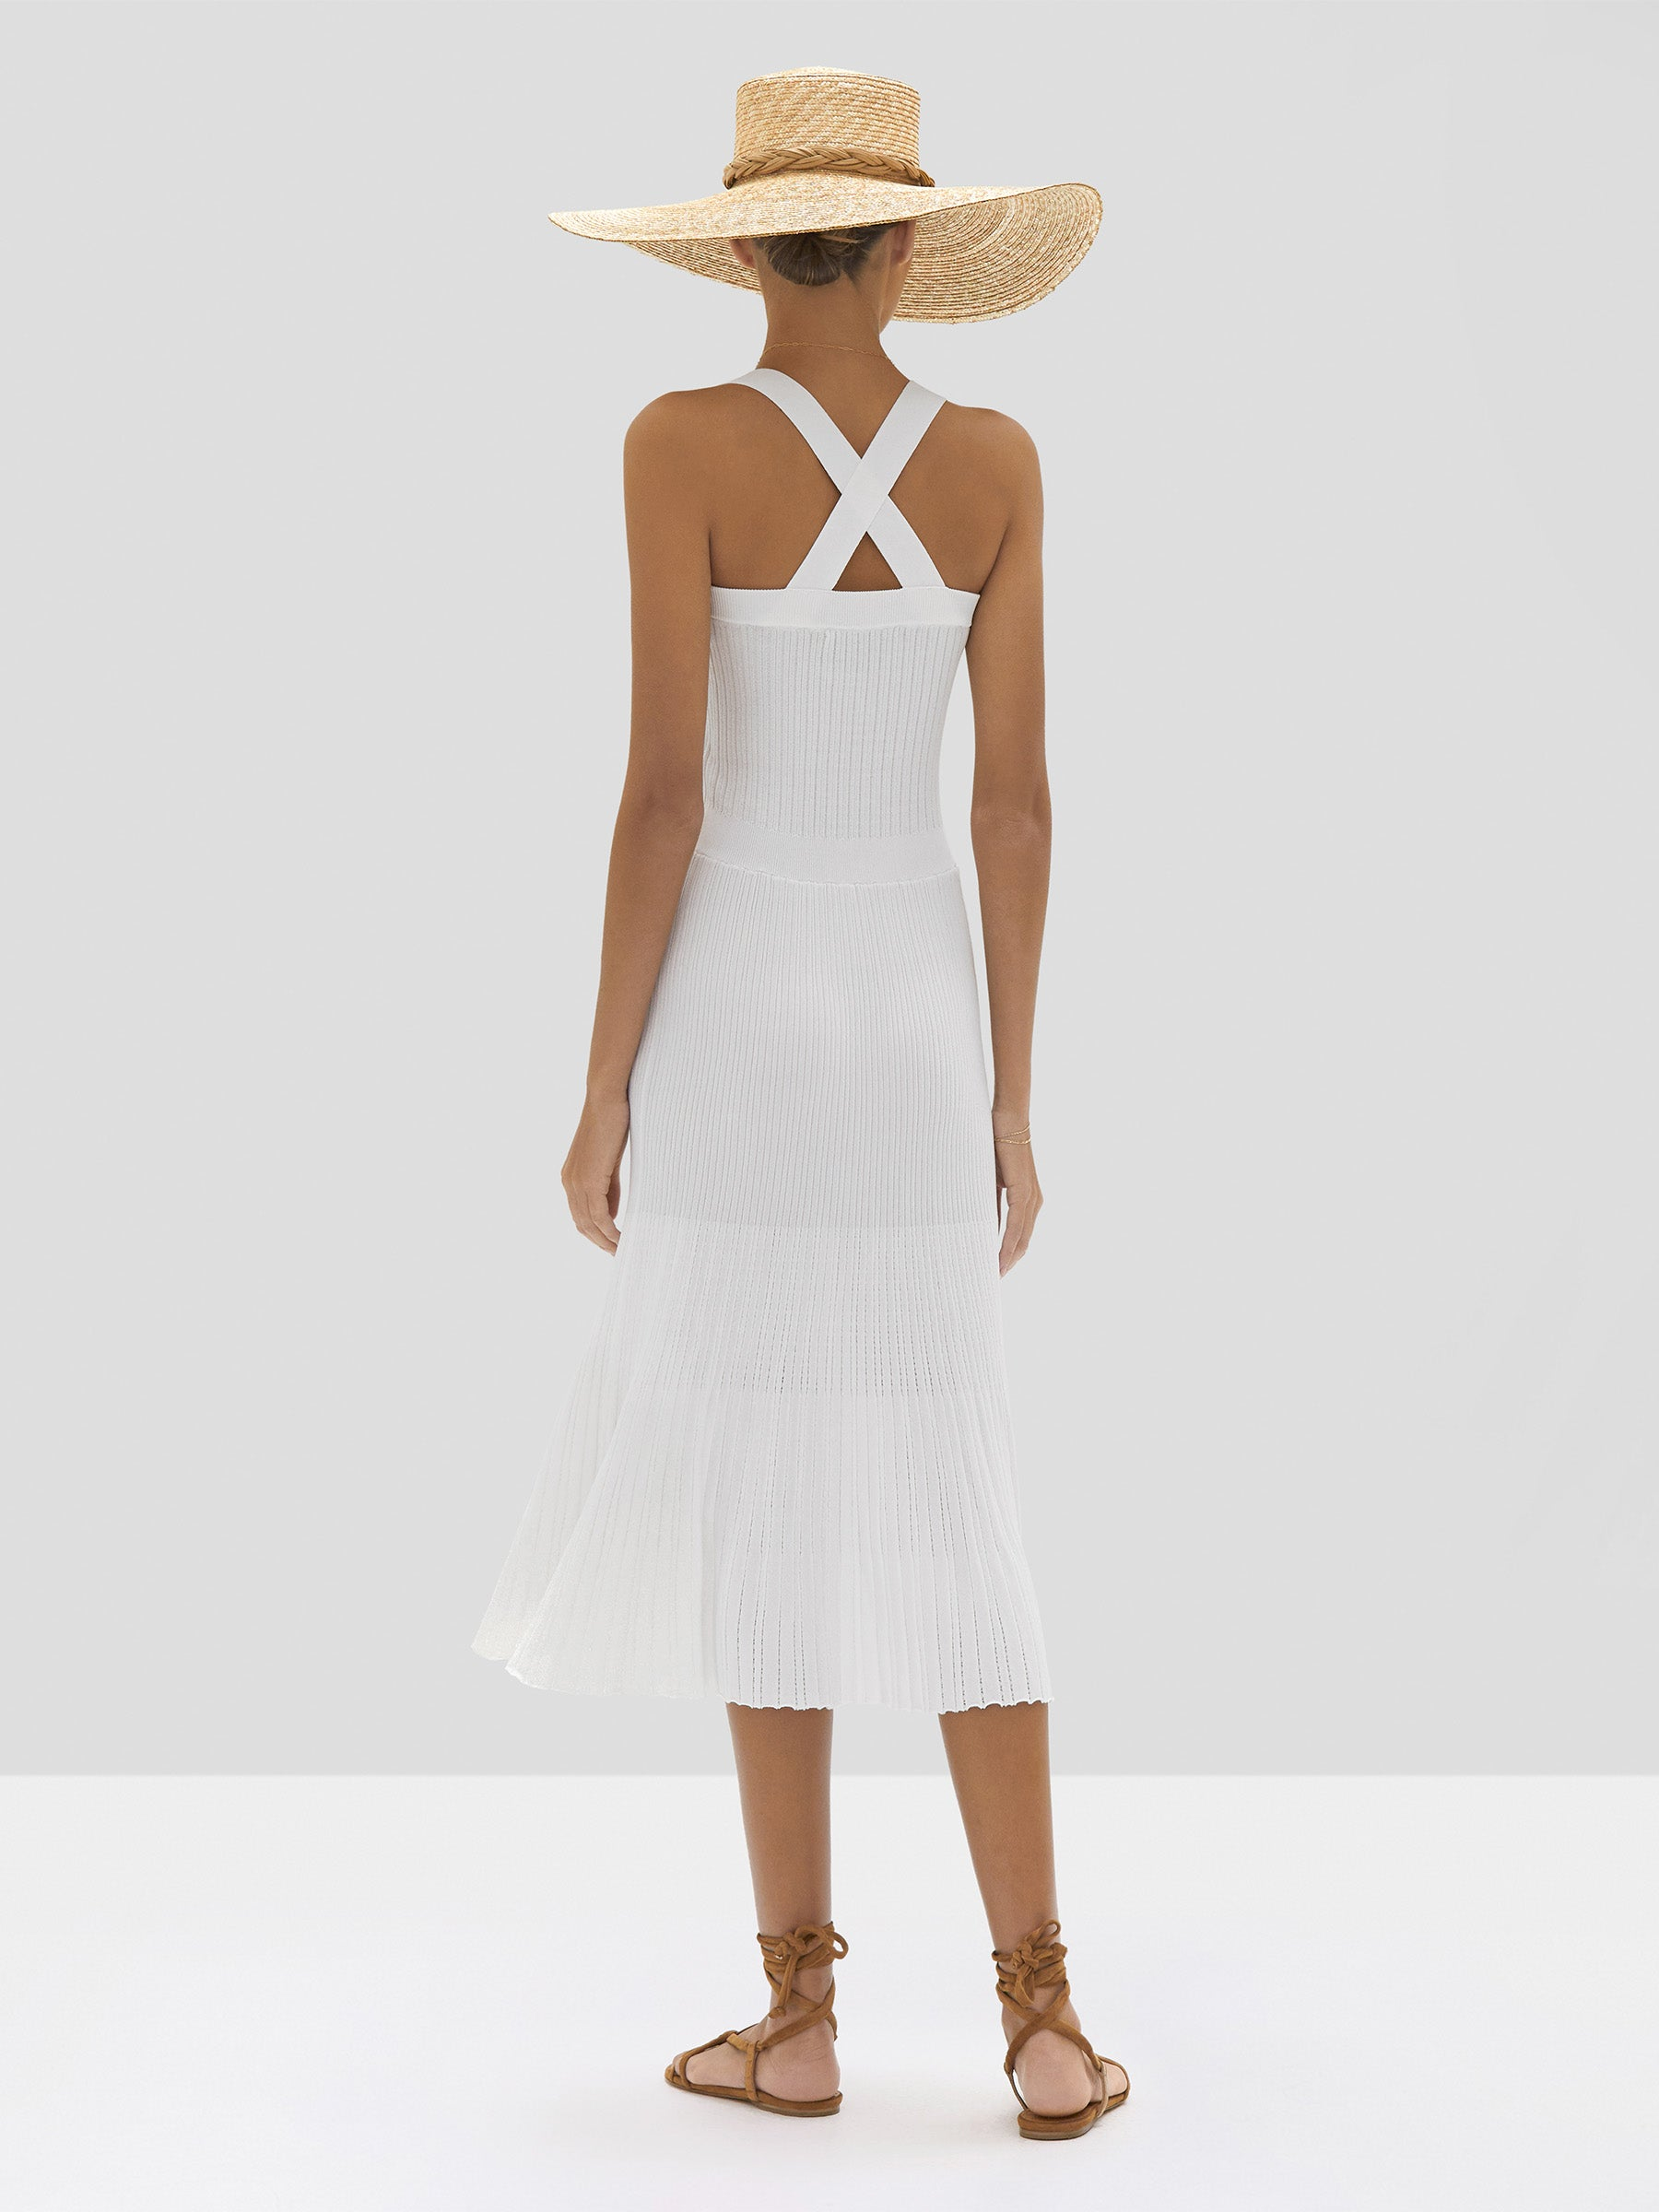 The Bess Dress in White from the Spring Summer 2020 - Rear View